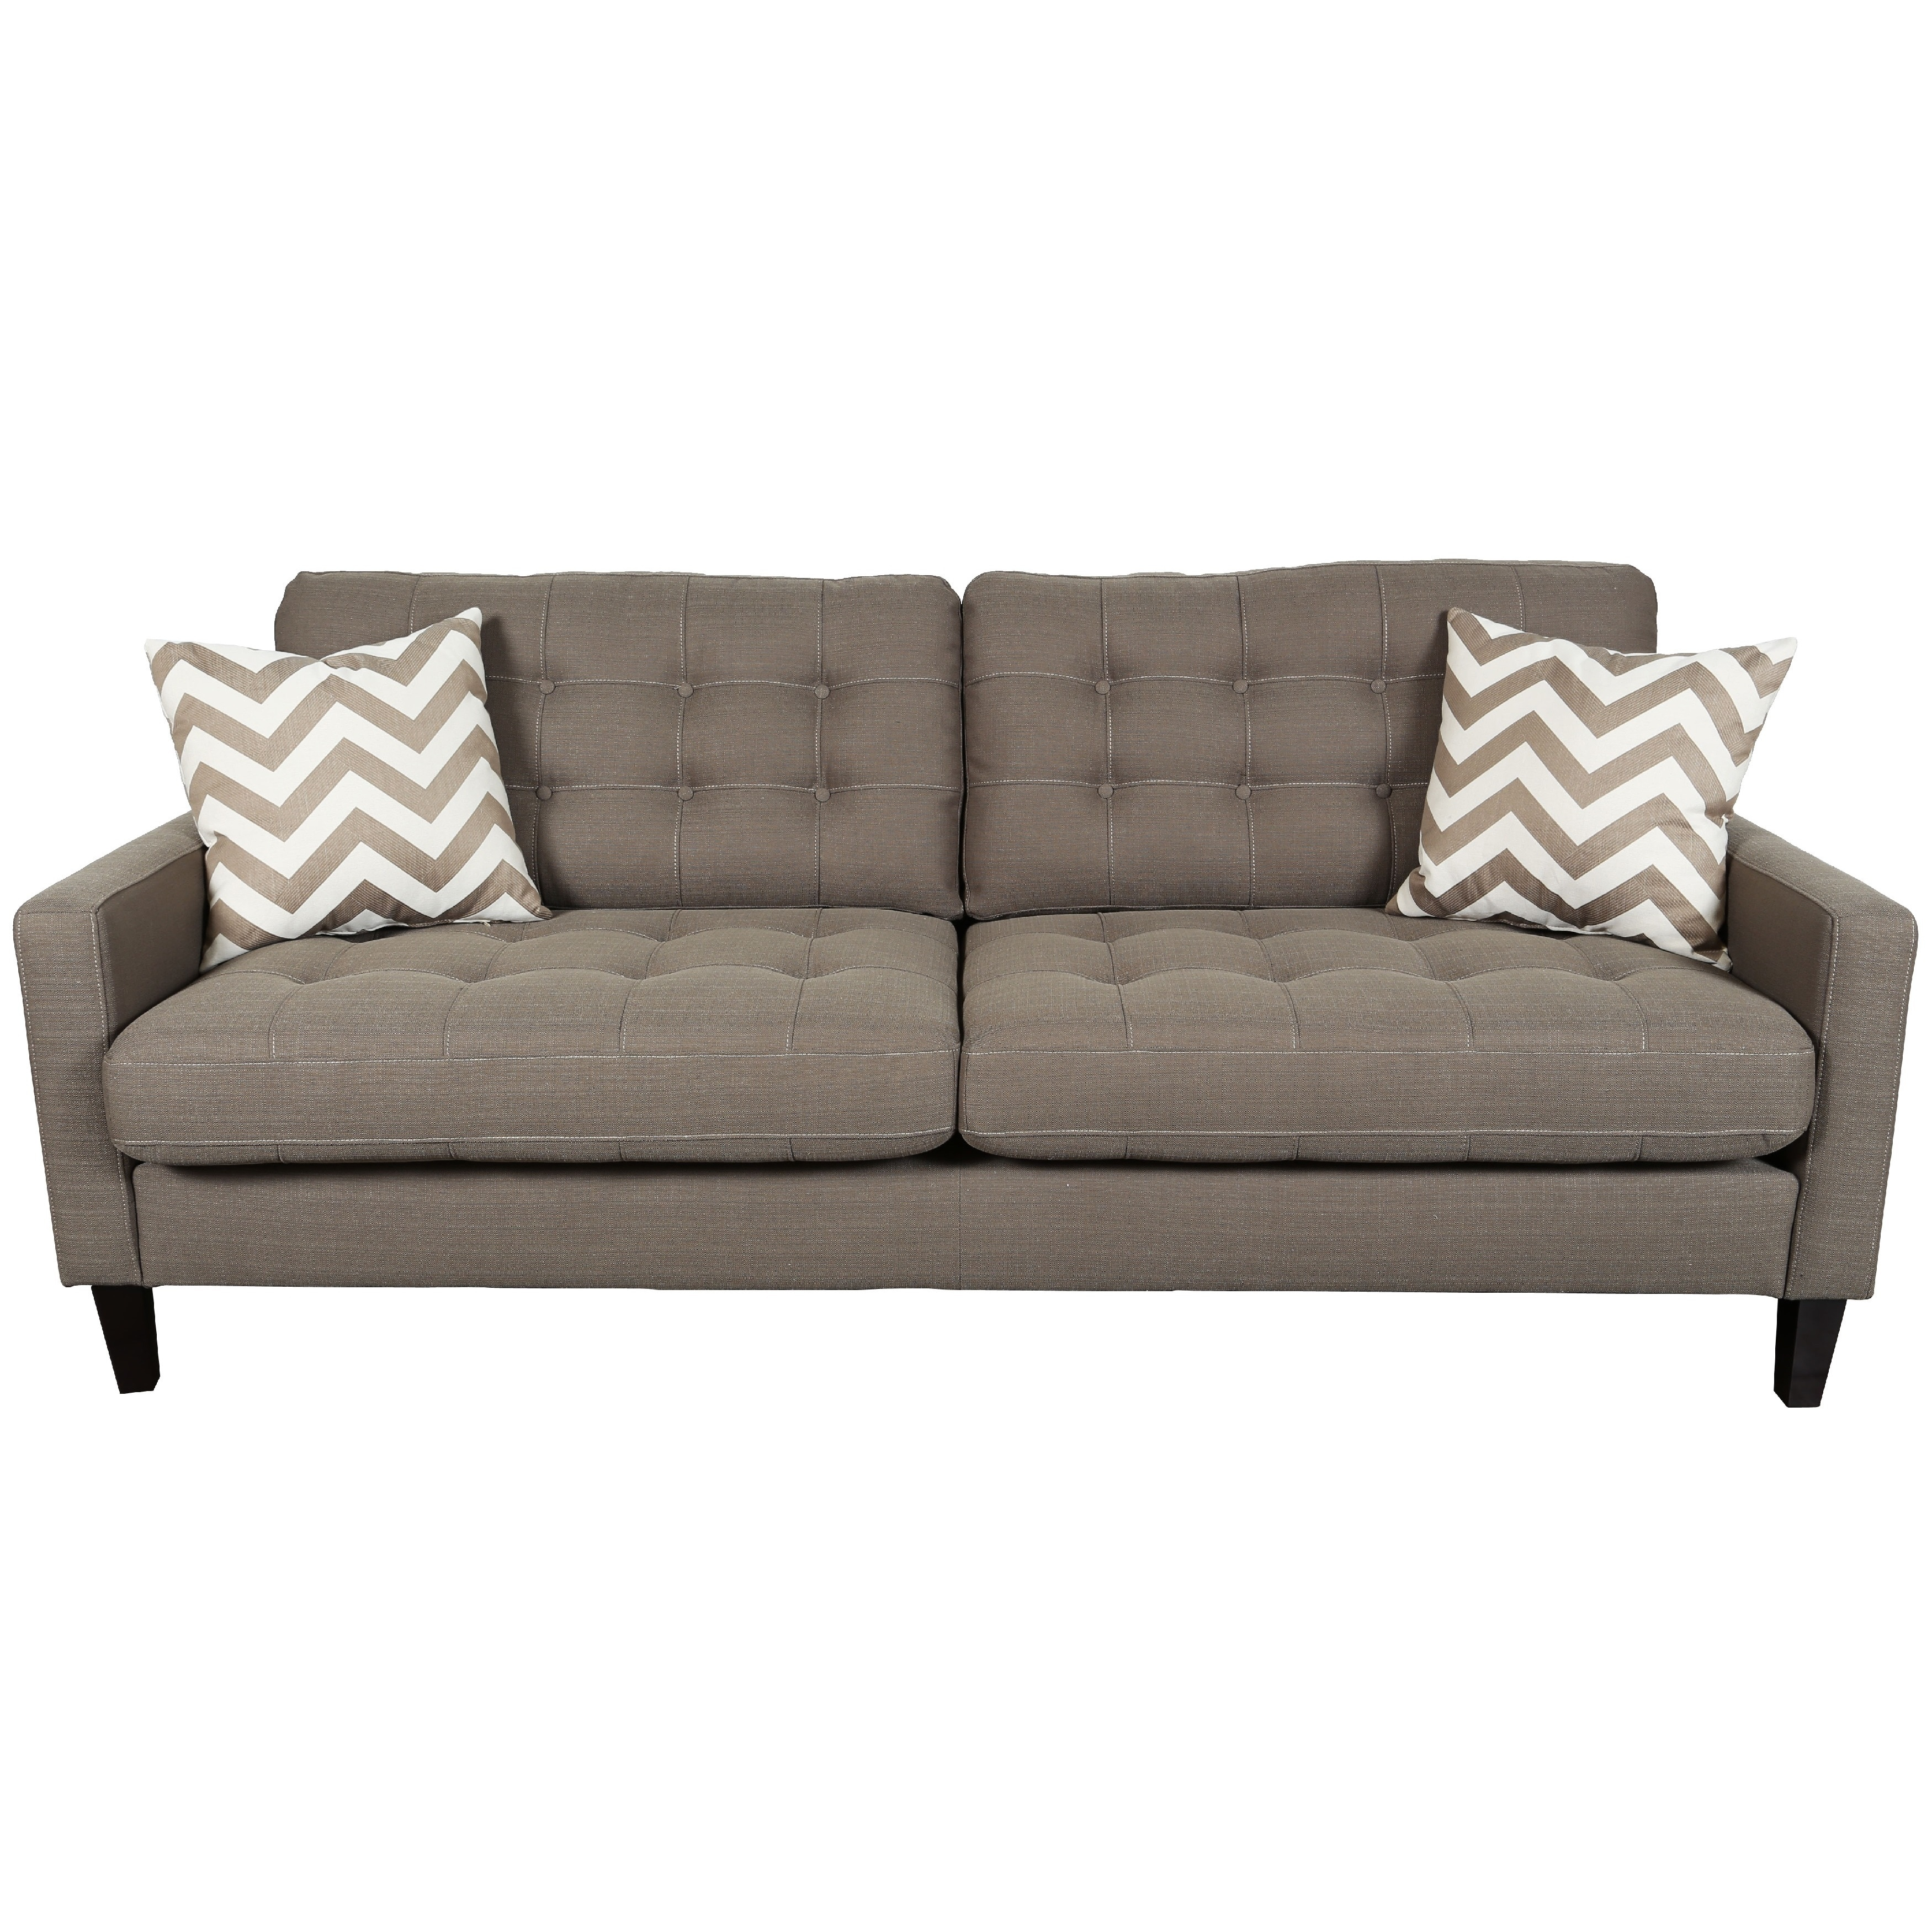 Porter Hamilton Otter Taupe (Brown) Sofa with Woven Chevr...